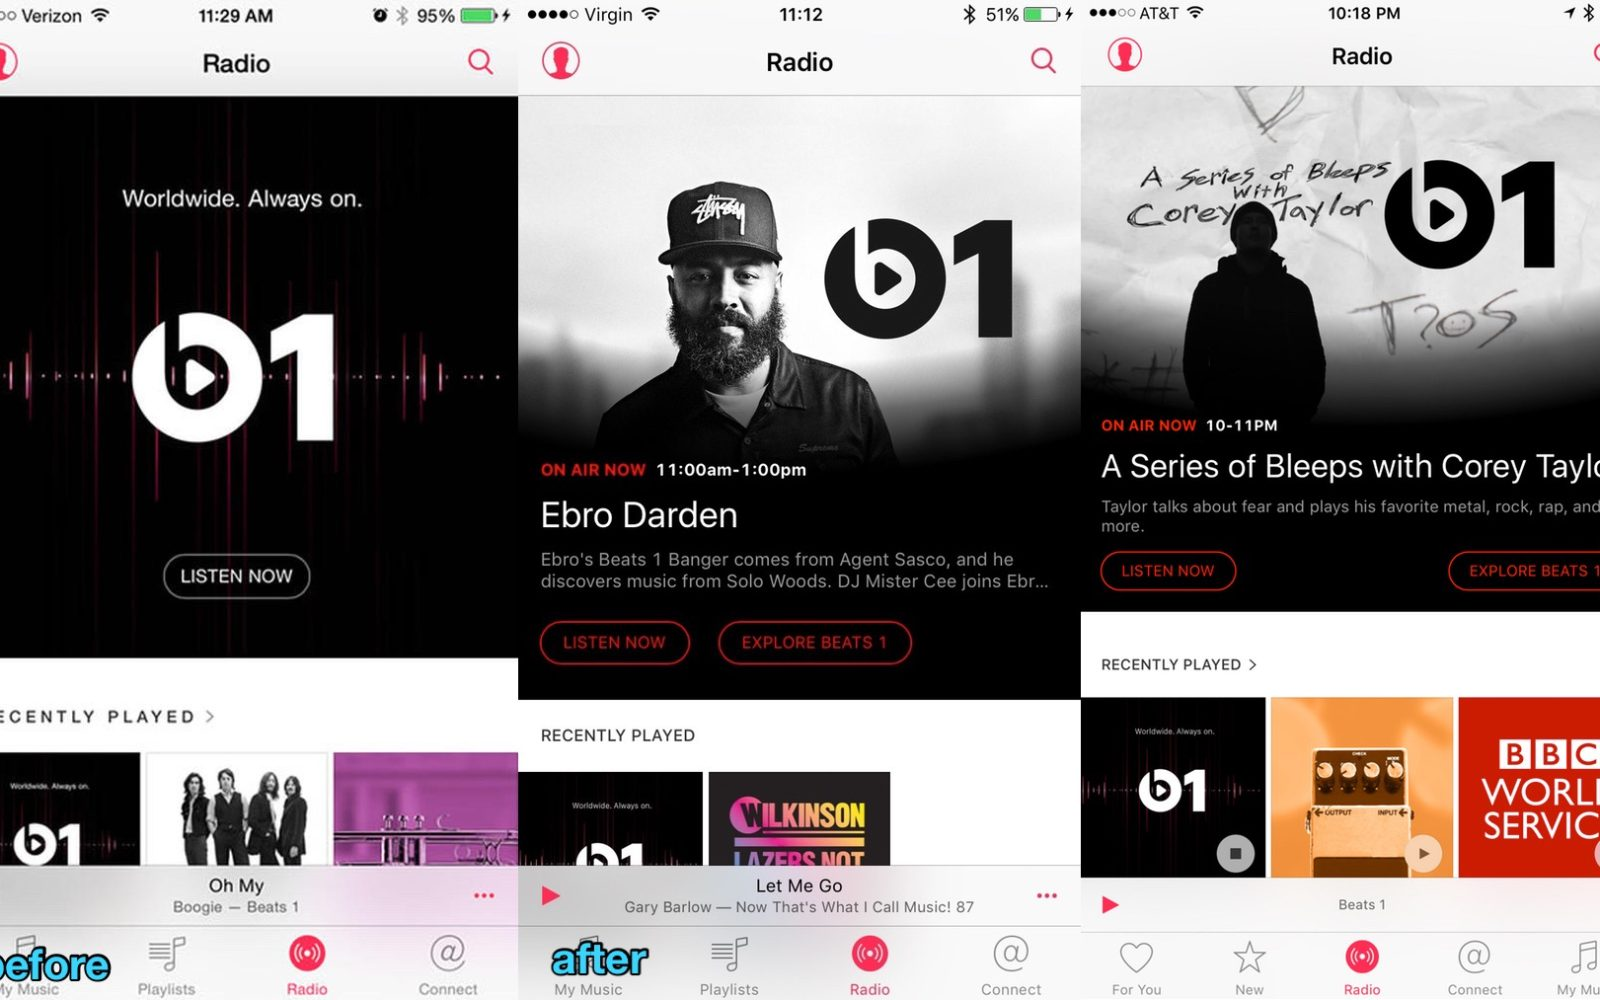 Apple updates Radio tab with live Beats 1 show details and artwork